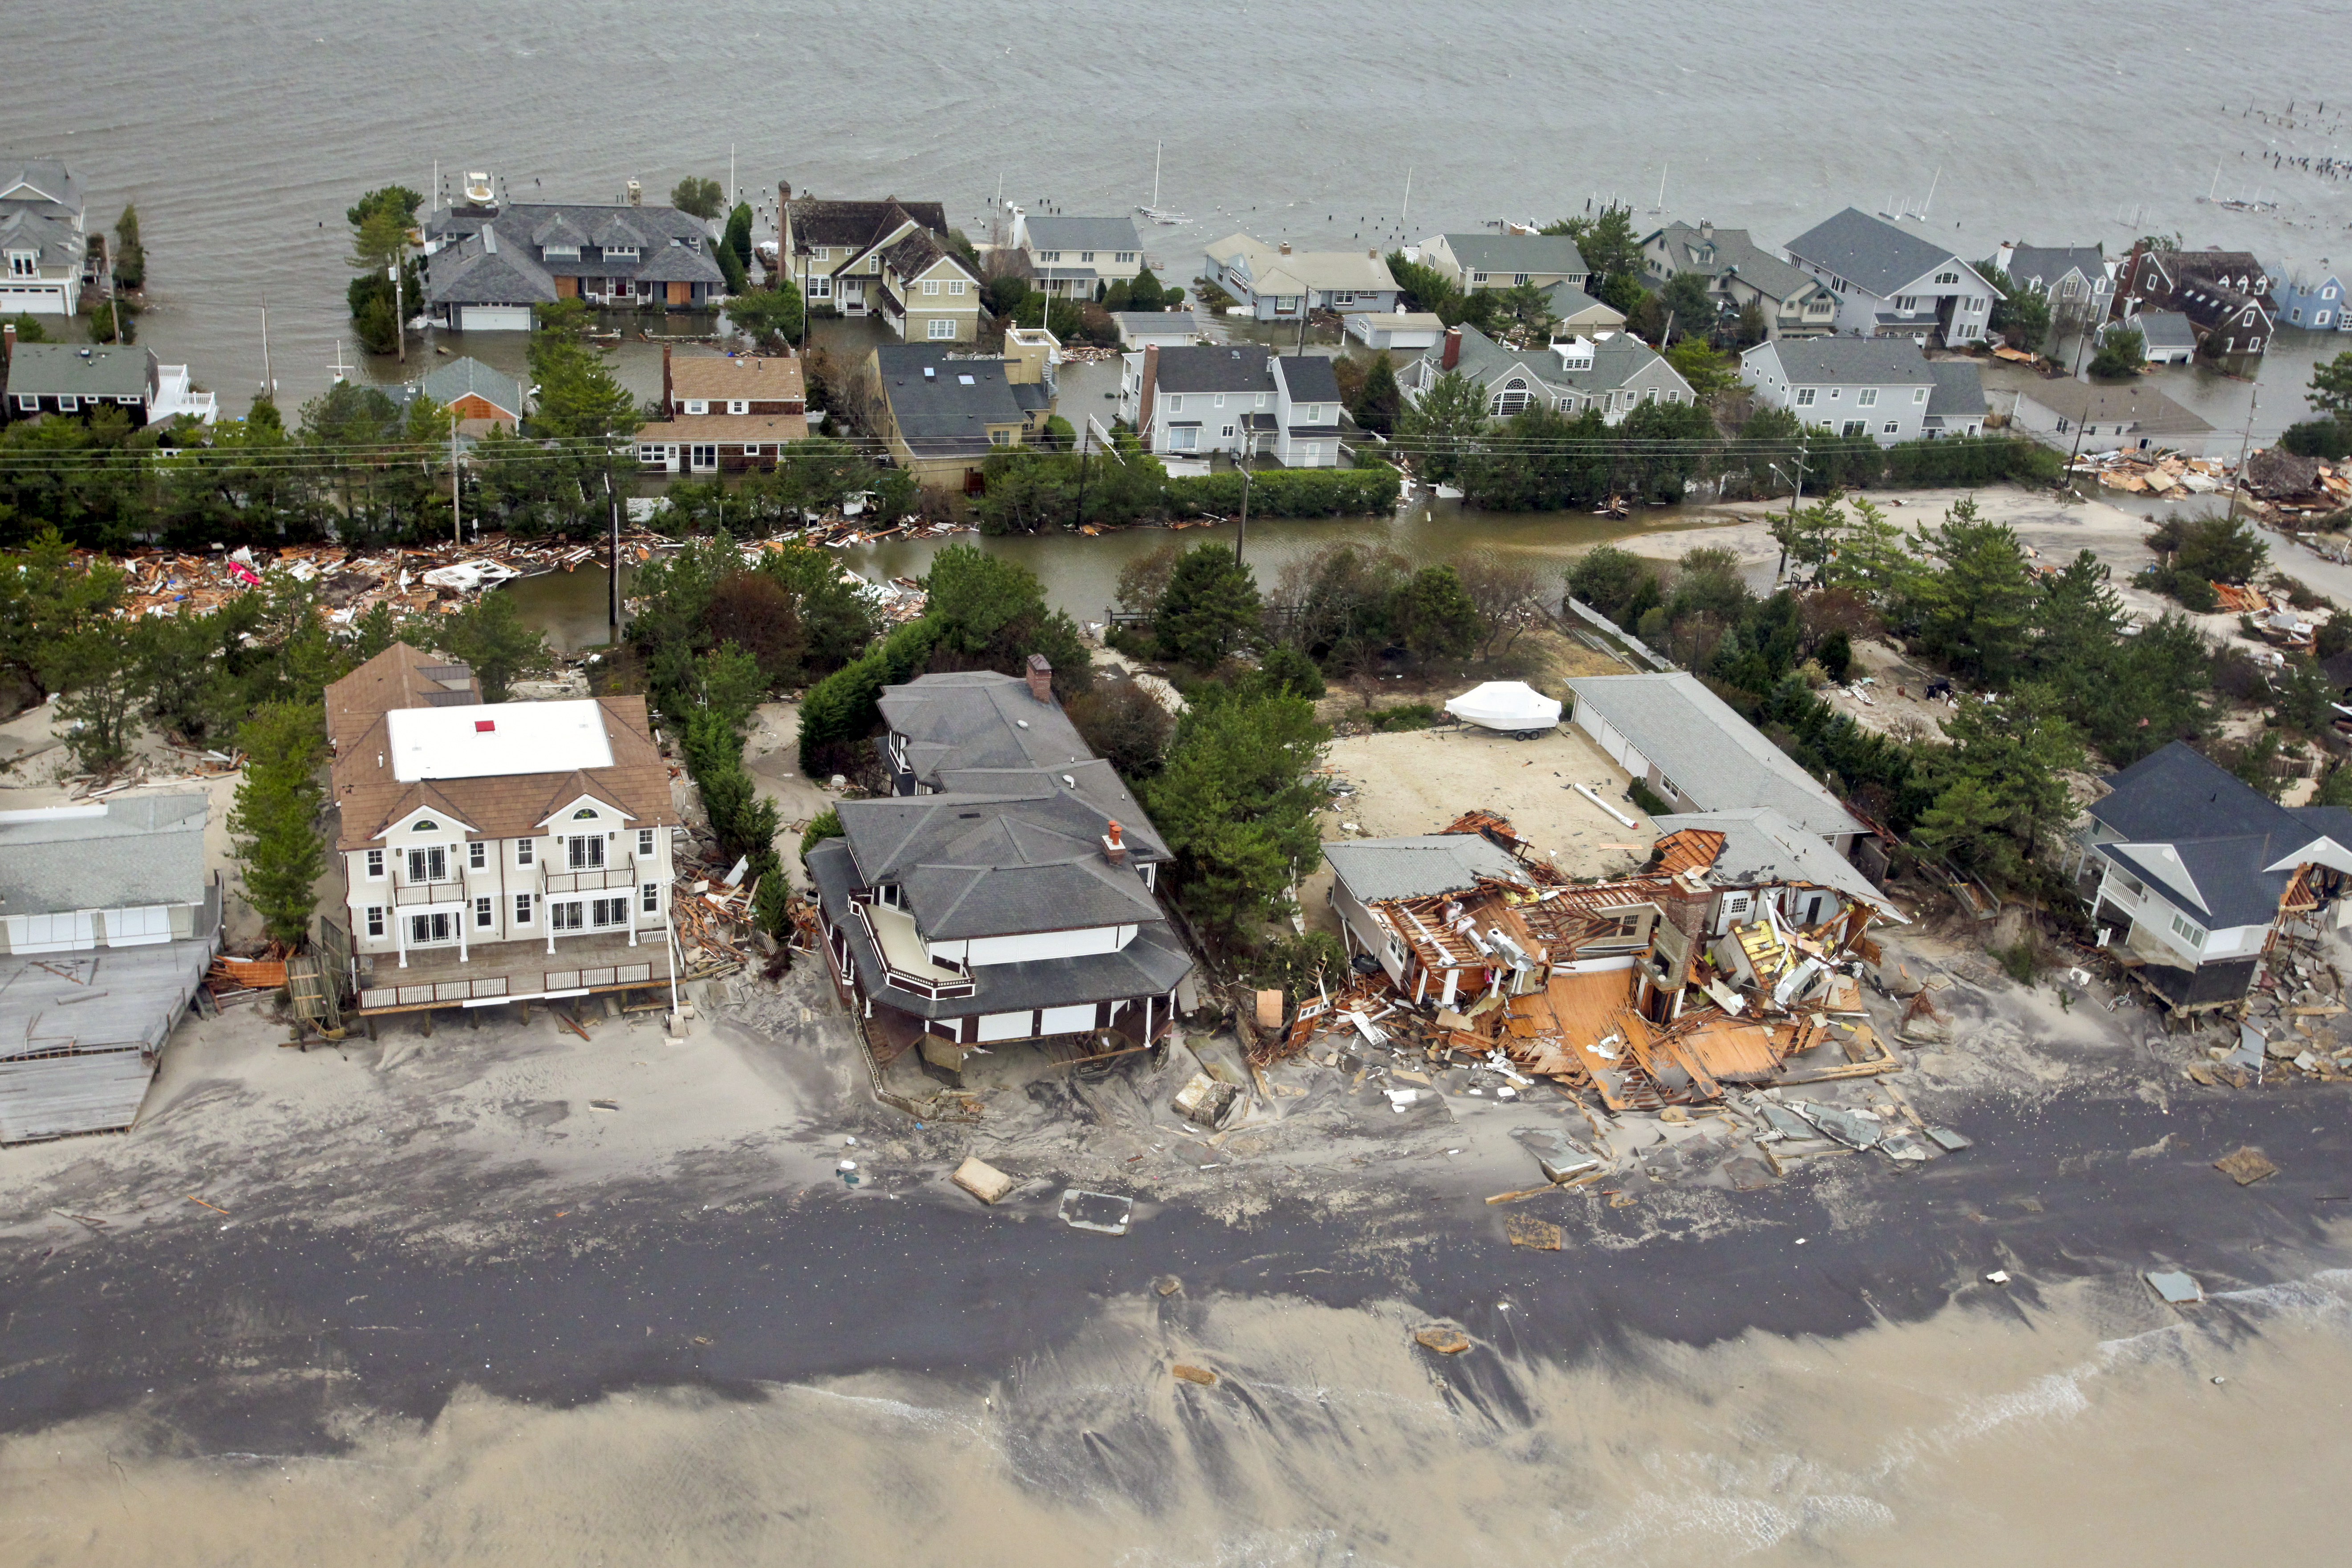 121030-F-AL508-081c_Aerial_views_during_an_Army_search_and_rescue_mission_show_damage_from_Hurricane_Sandy_to_the_New_Jersey_coast%2C_Oct._30%2C_2012